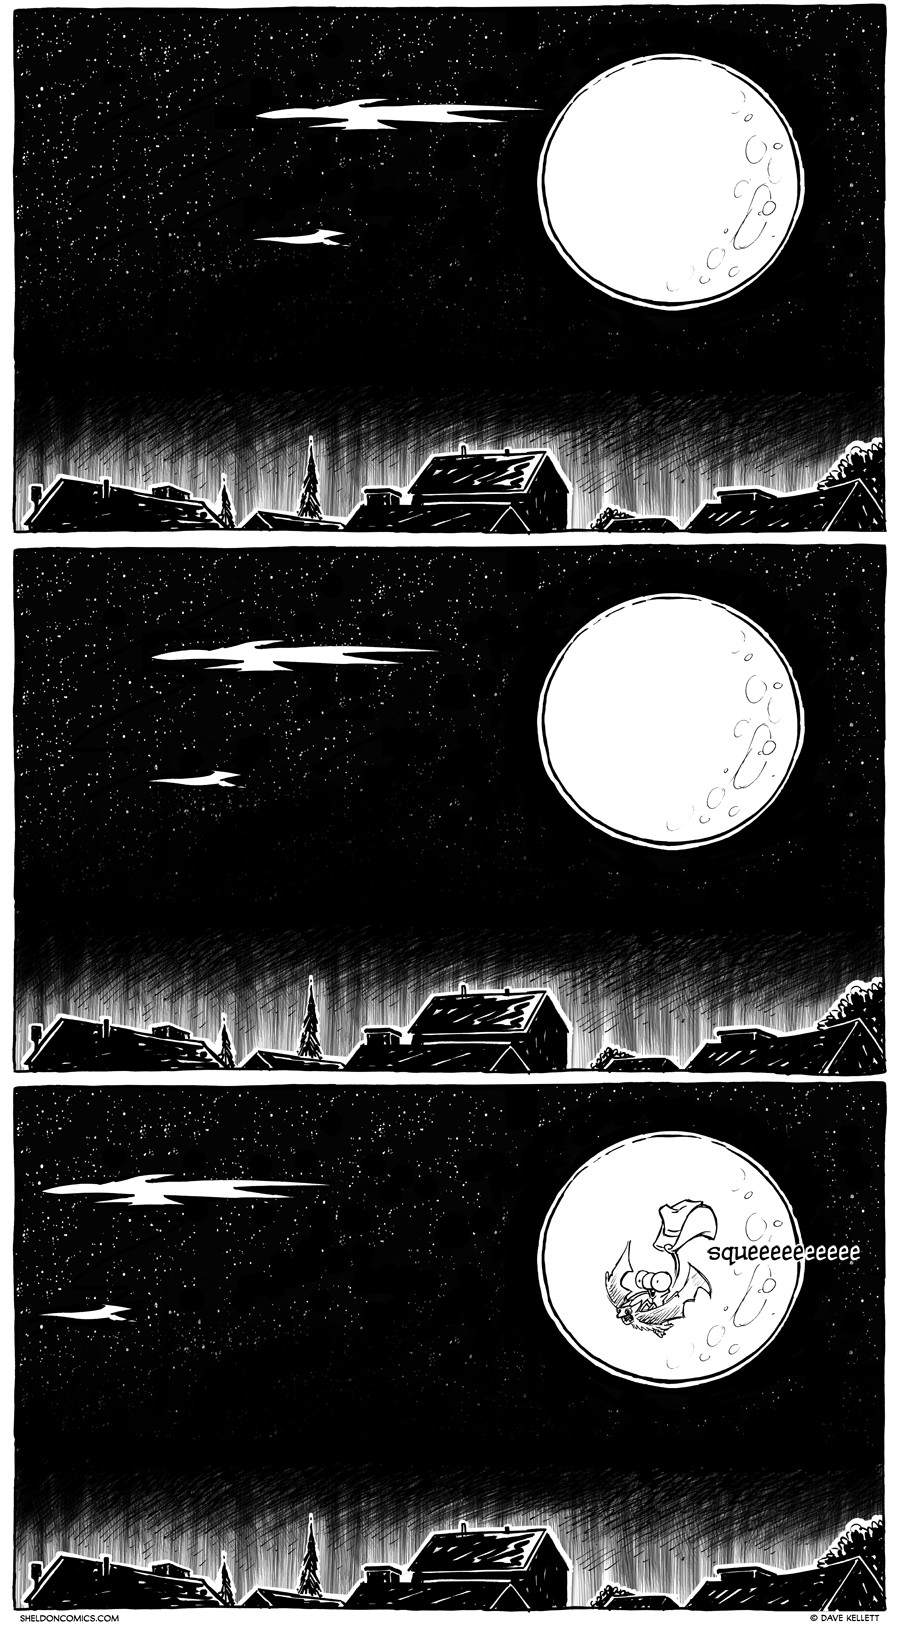 strip for February / 25 / 2013 - There was a big moon that night and...